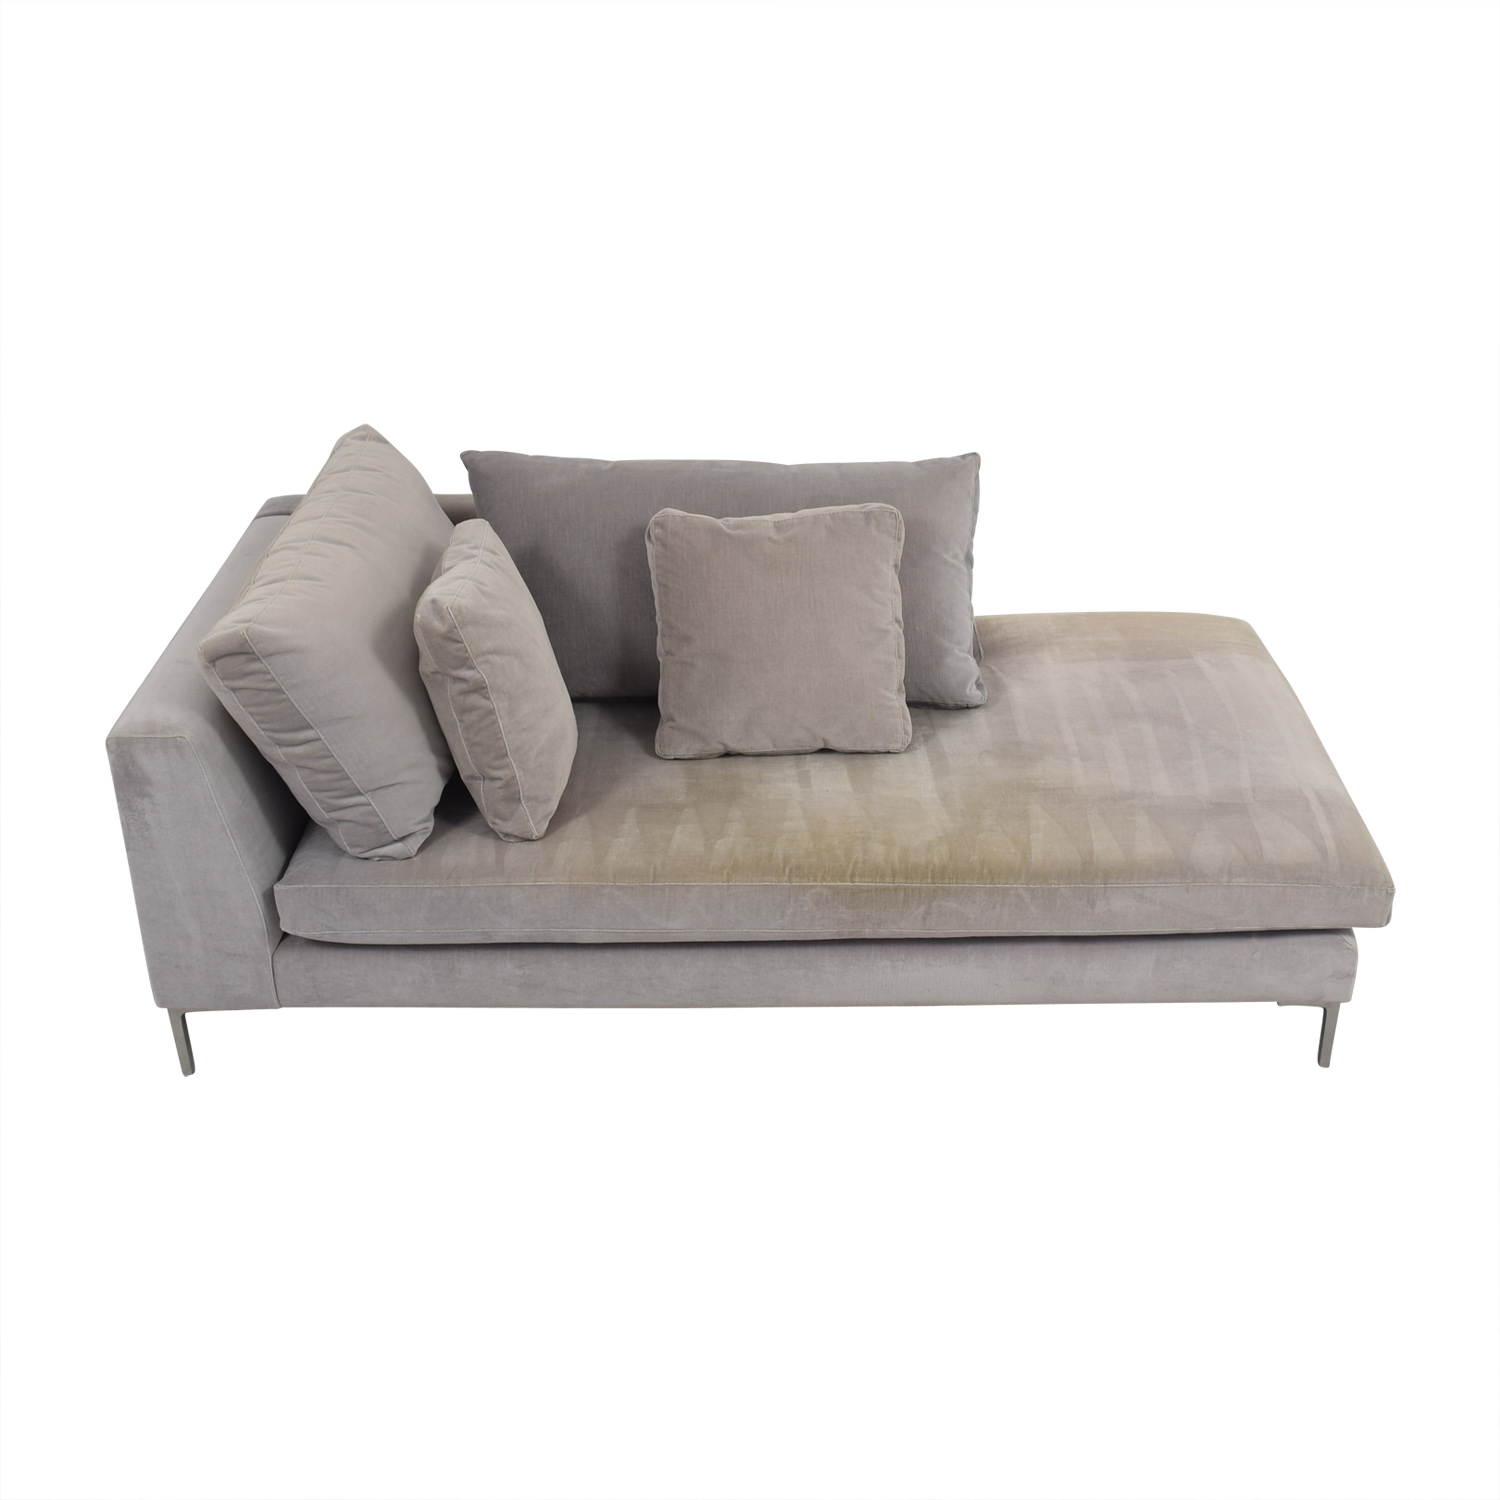 buy ABC Right Arm Velvet Chaise ABC Carpet and Home Sofas